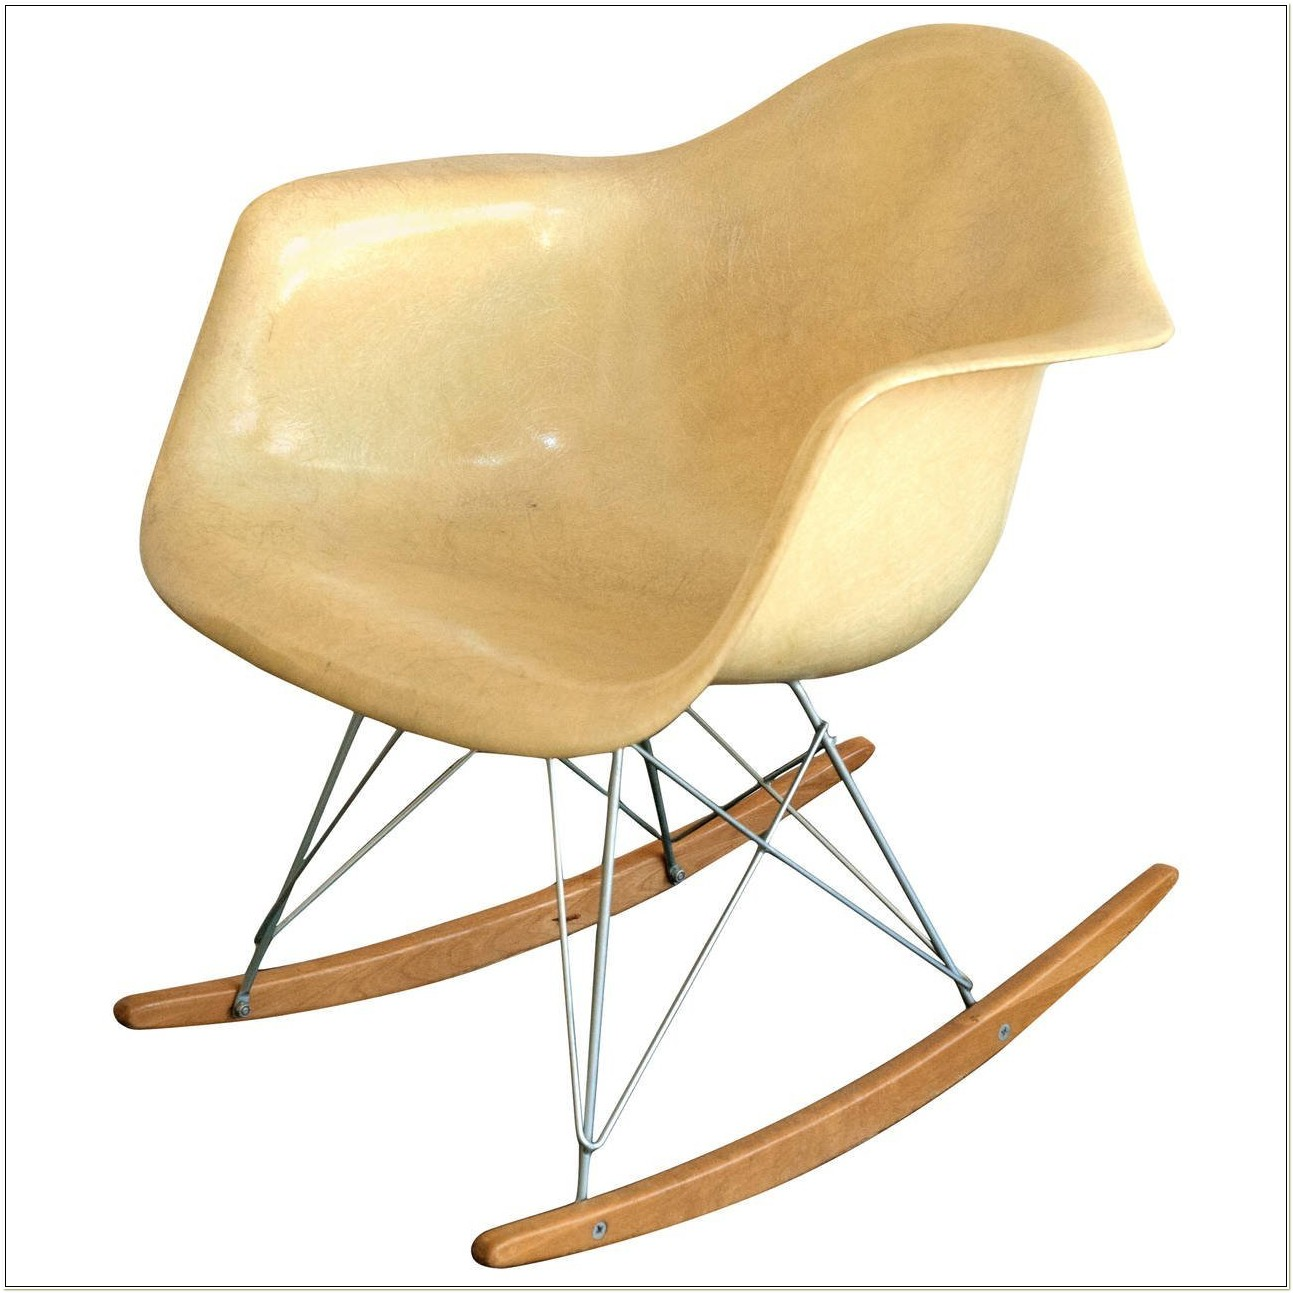 Eames Herman Miller Rocking Chair